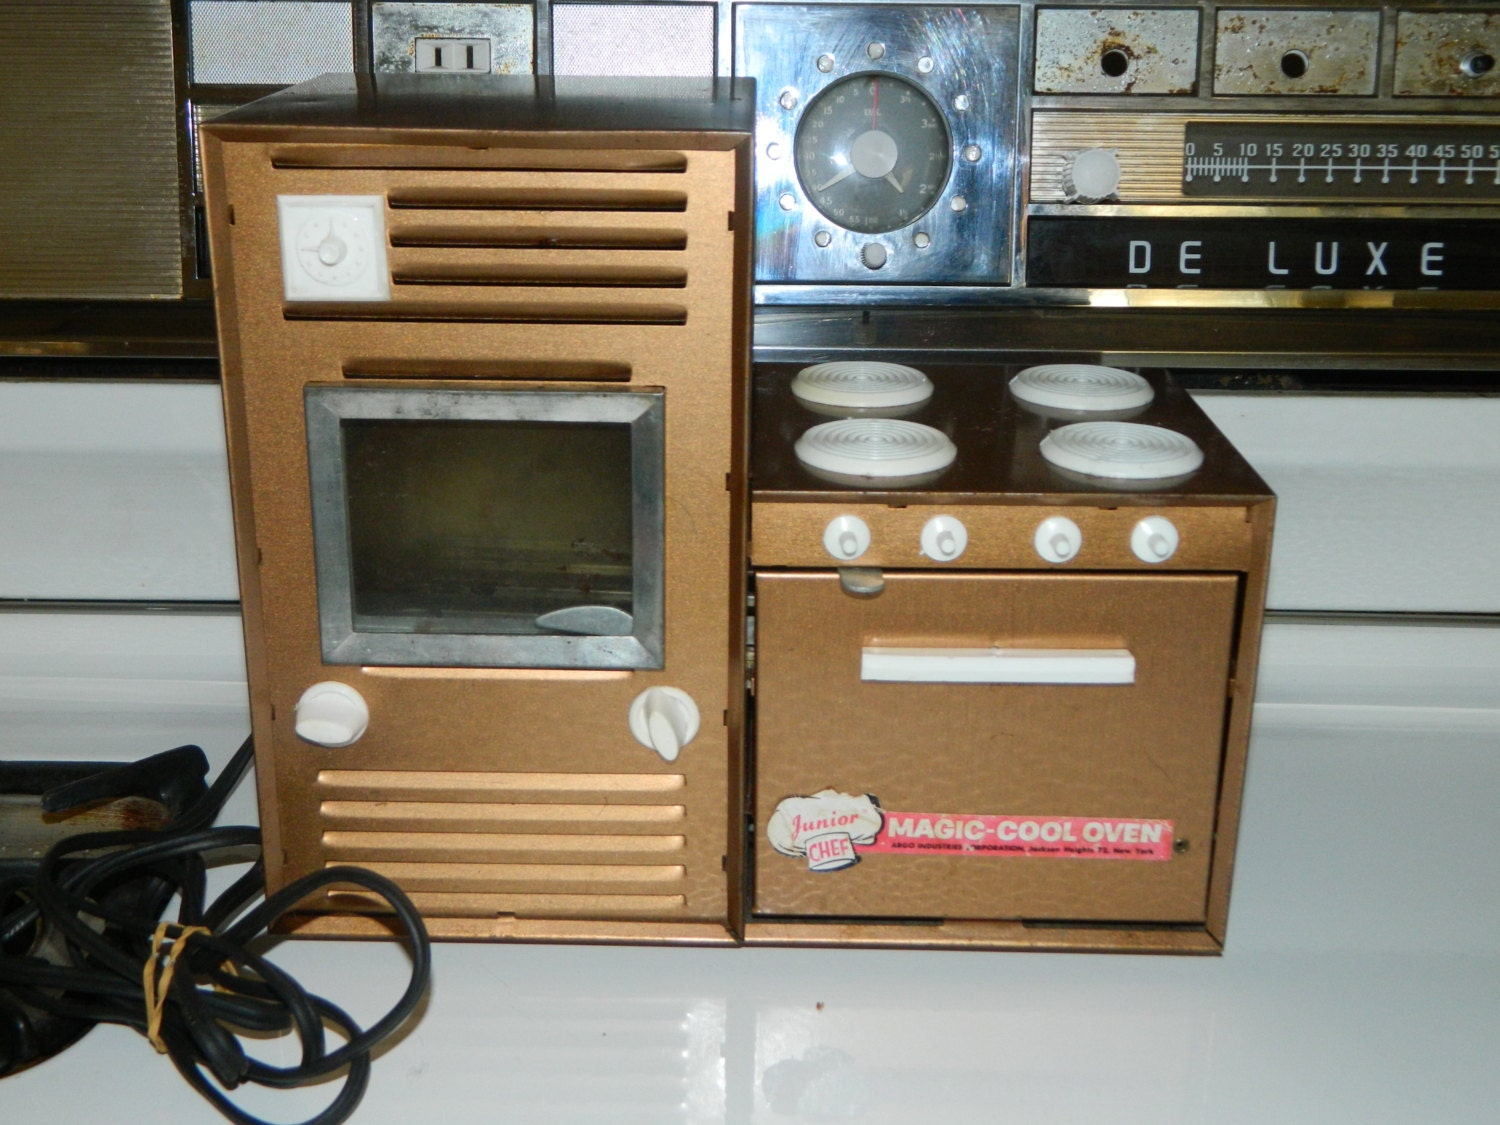 Old Magic Chef Wall Oven Junior Chef Magic Cool Oven